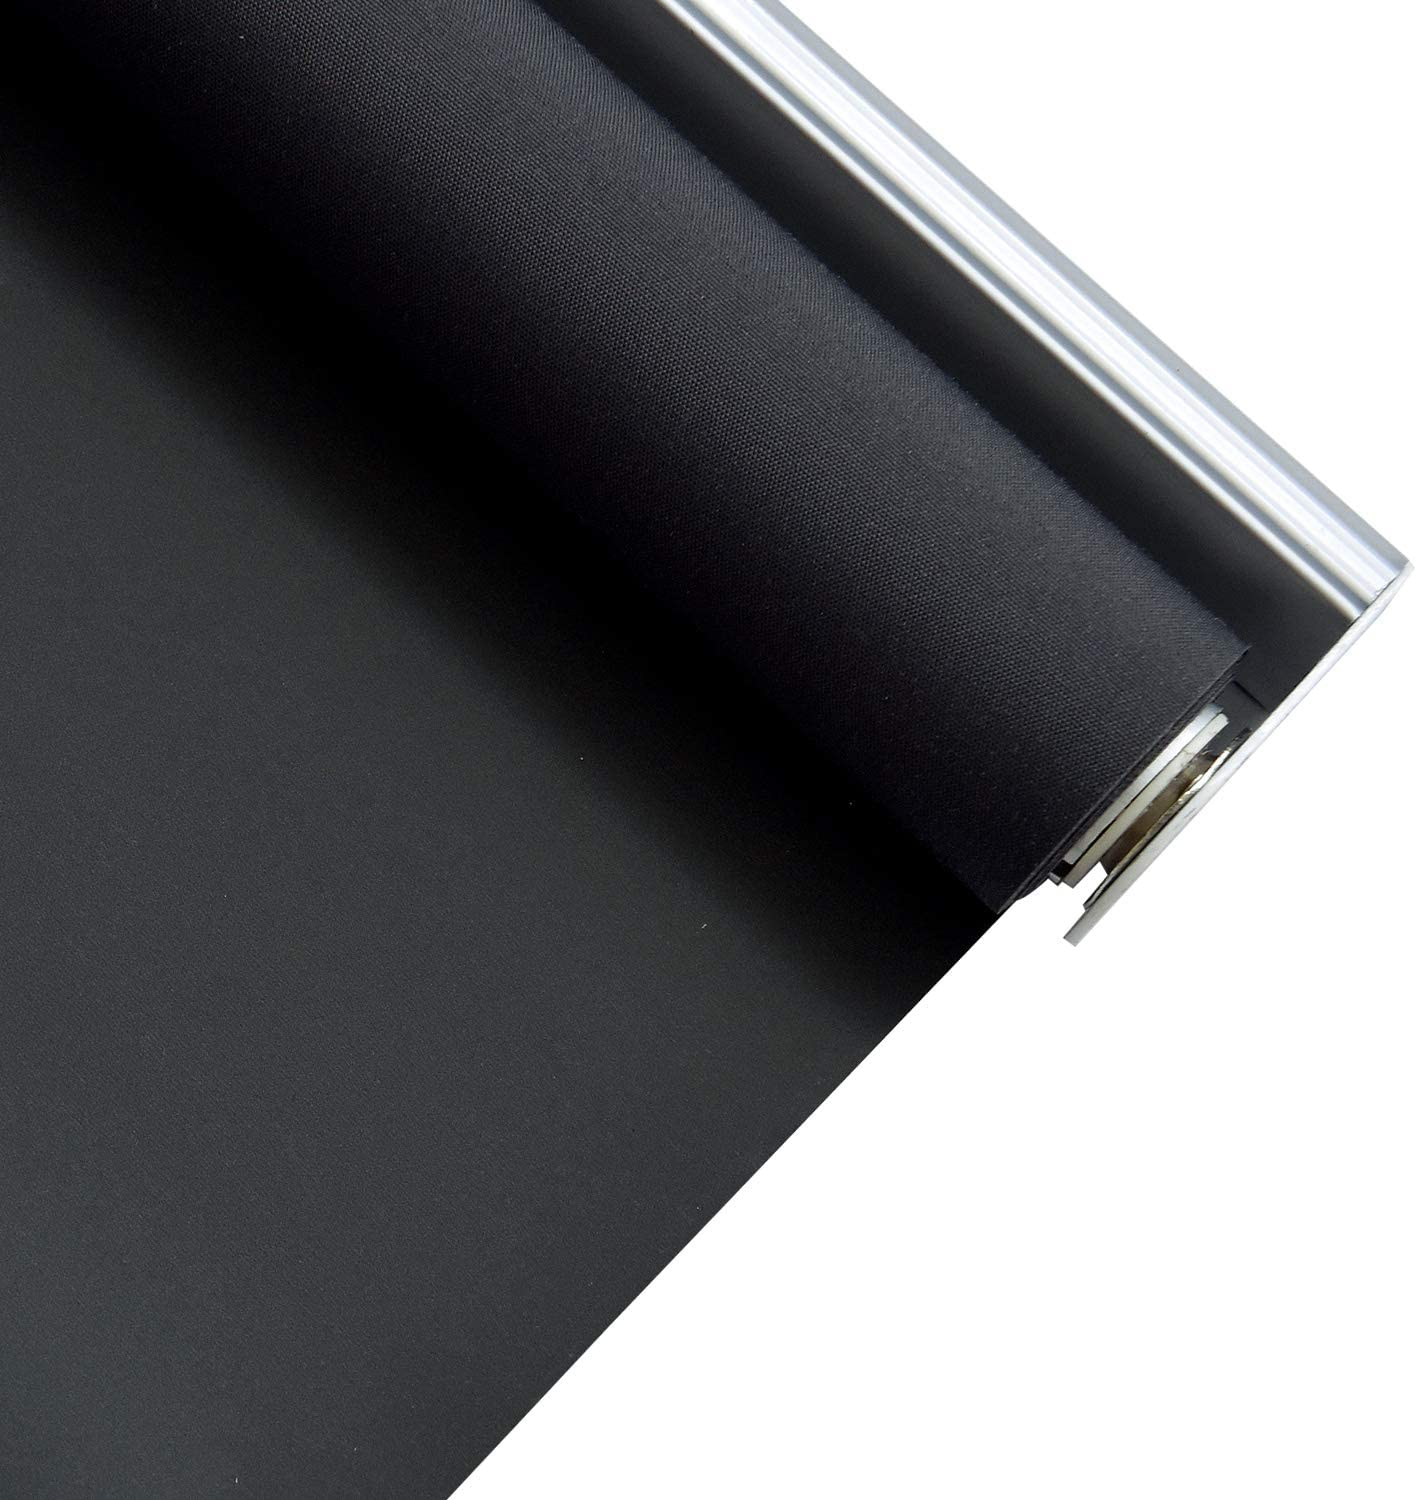 ALLBRIGHT Classic 100% Blackout Cordless Thermal Insulated Fabric Vinyl Roller Shades Blinds for Windows, Easy to Install, NightBlack, 33